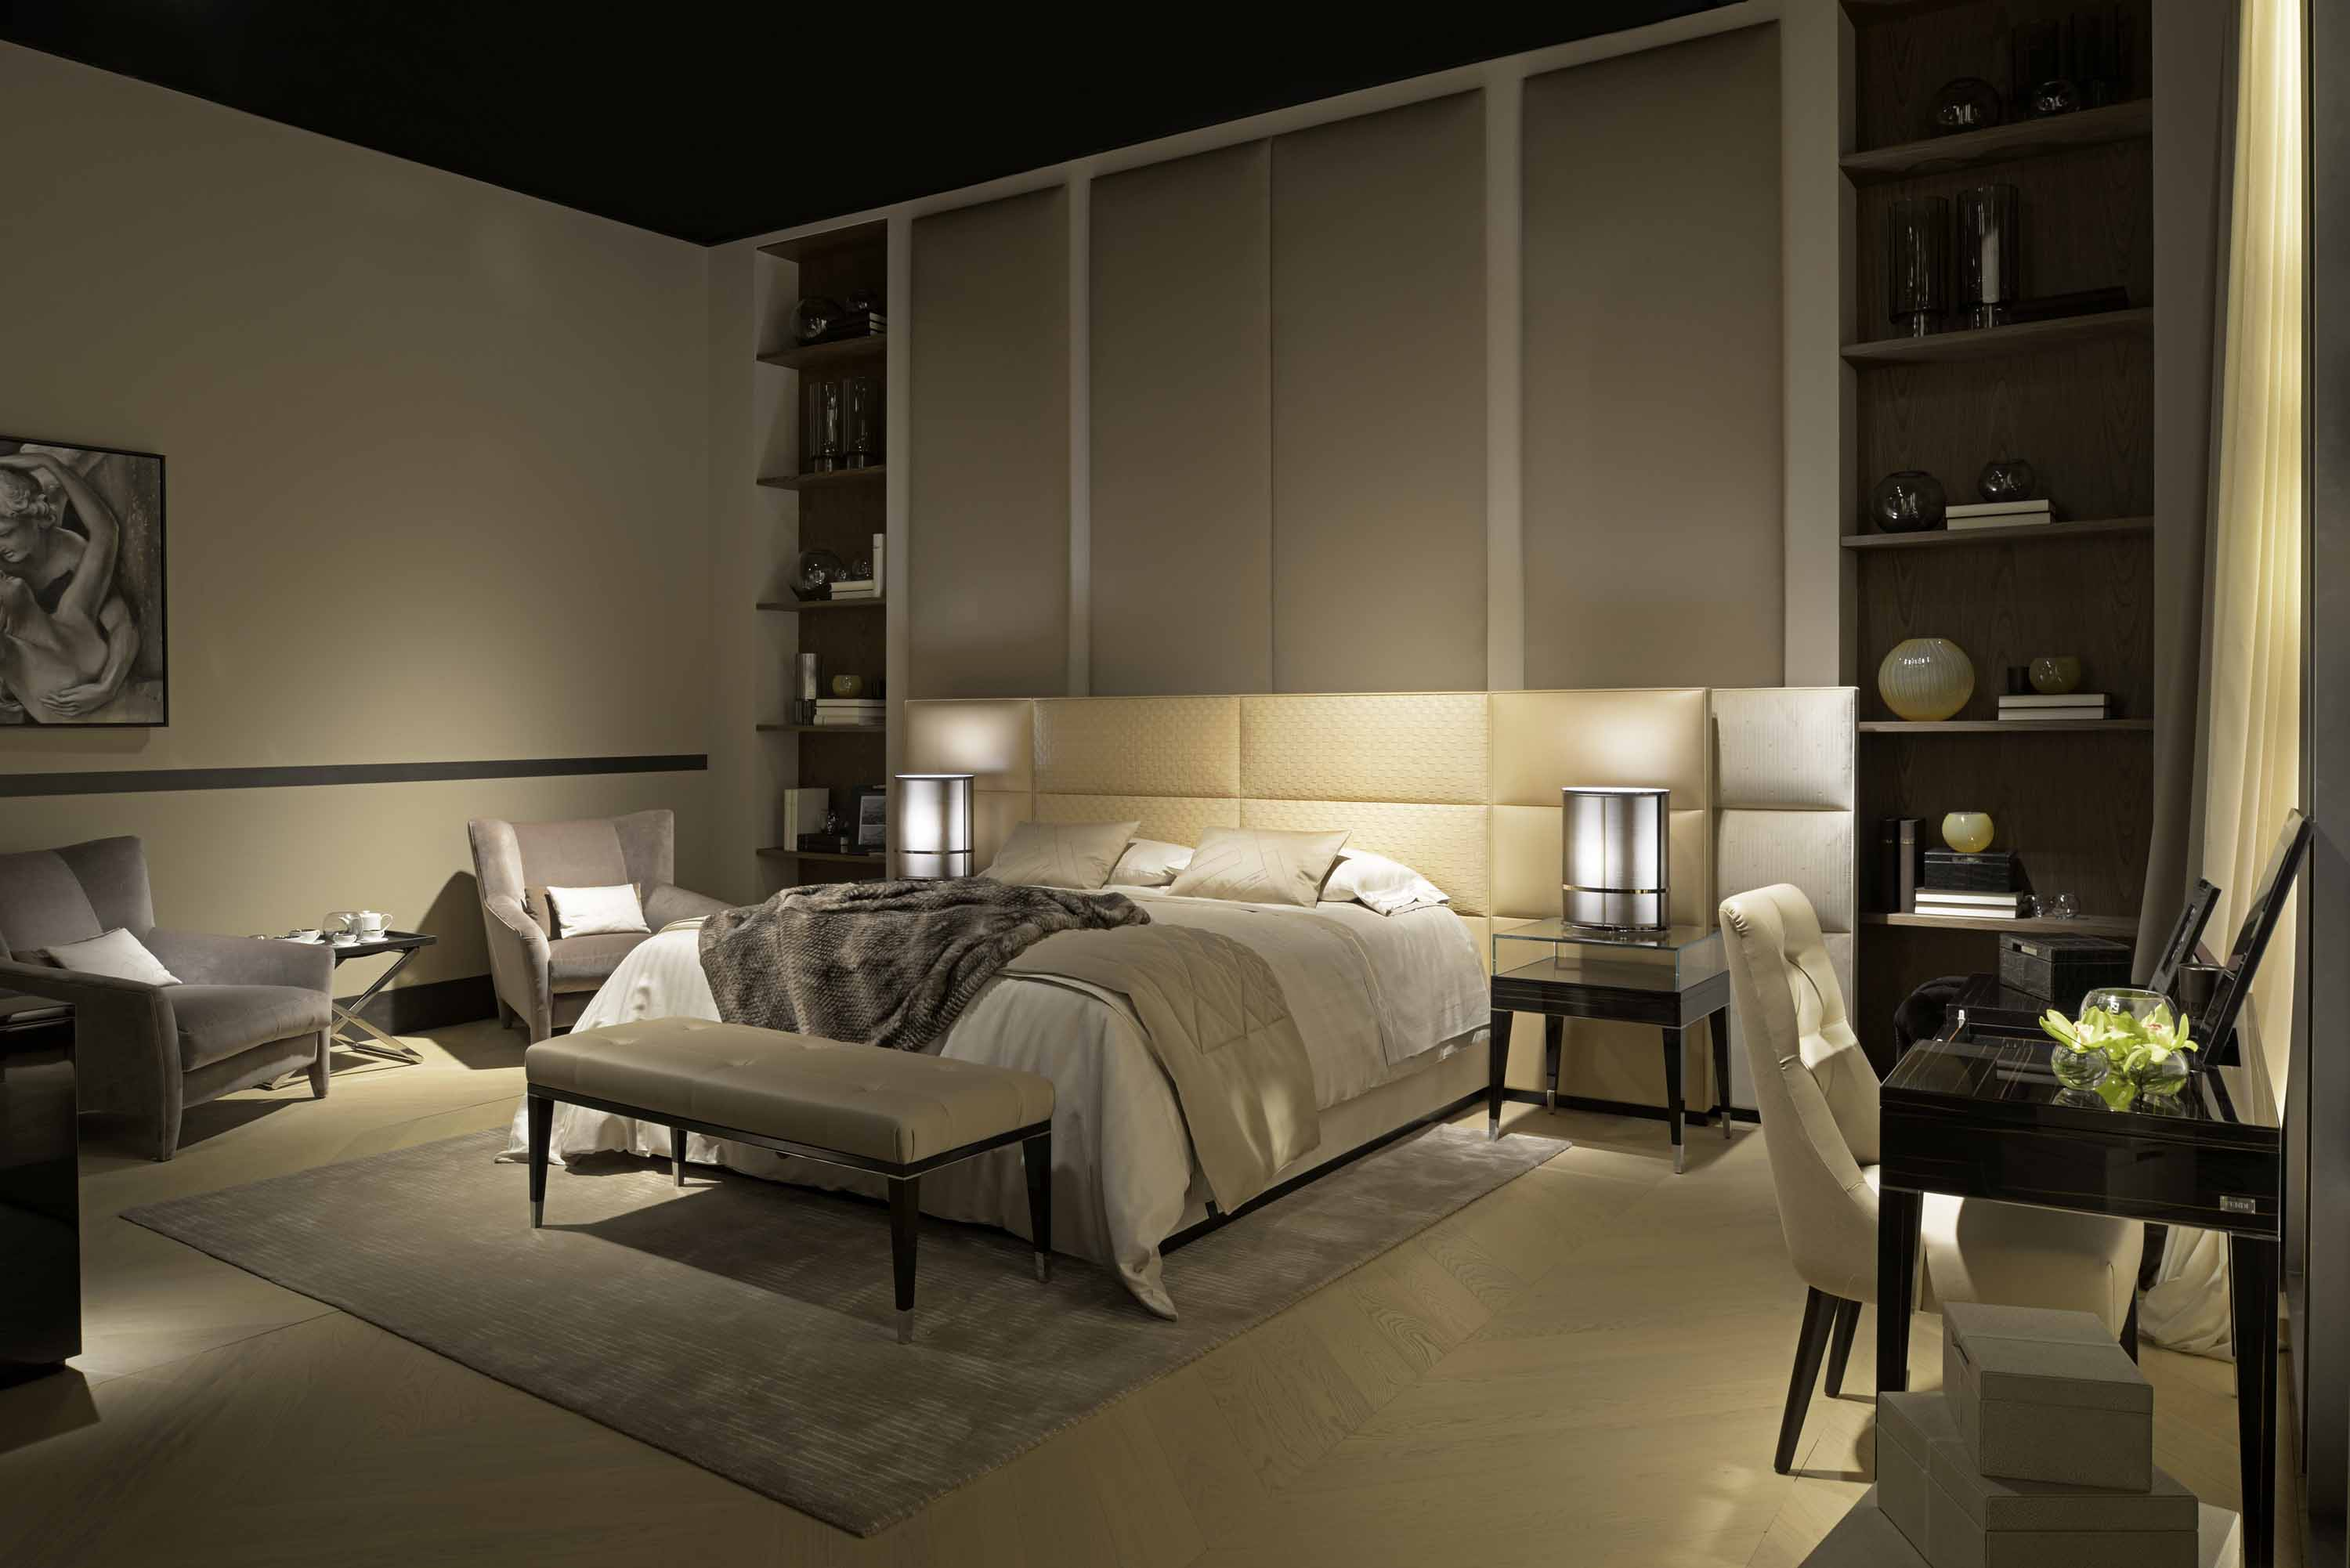 89de05aa506216ac further Luxury Closet Design Ideas additionally 114138171781915130 together with How To Create A Luxury Look In Your Home besides Calming Bedroom Paint Colors Inspirations And For Blackhawk Images By Benjamin. on master bedroom decorating ideas